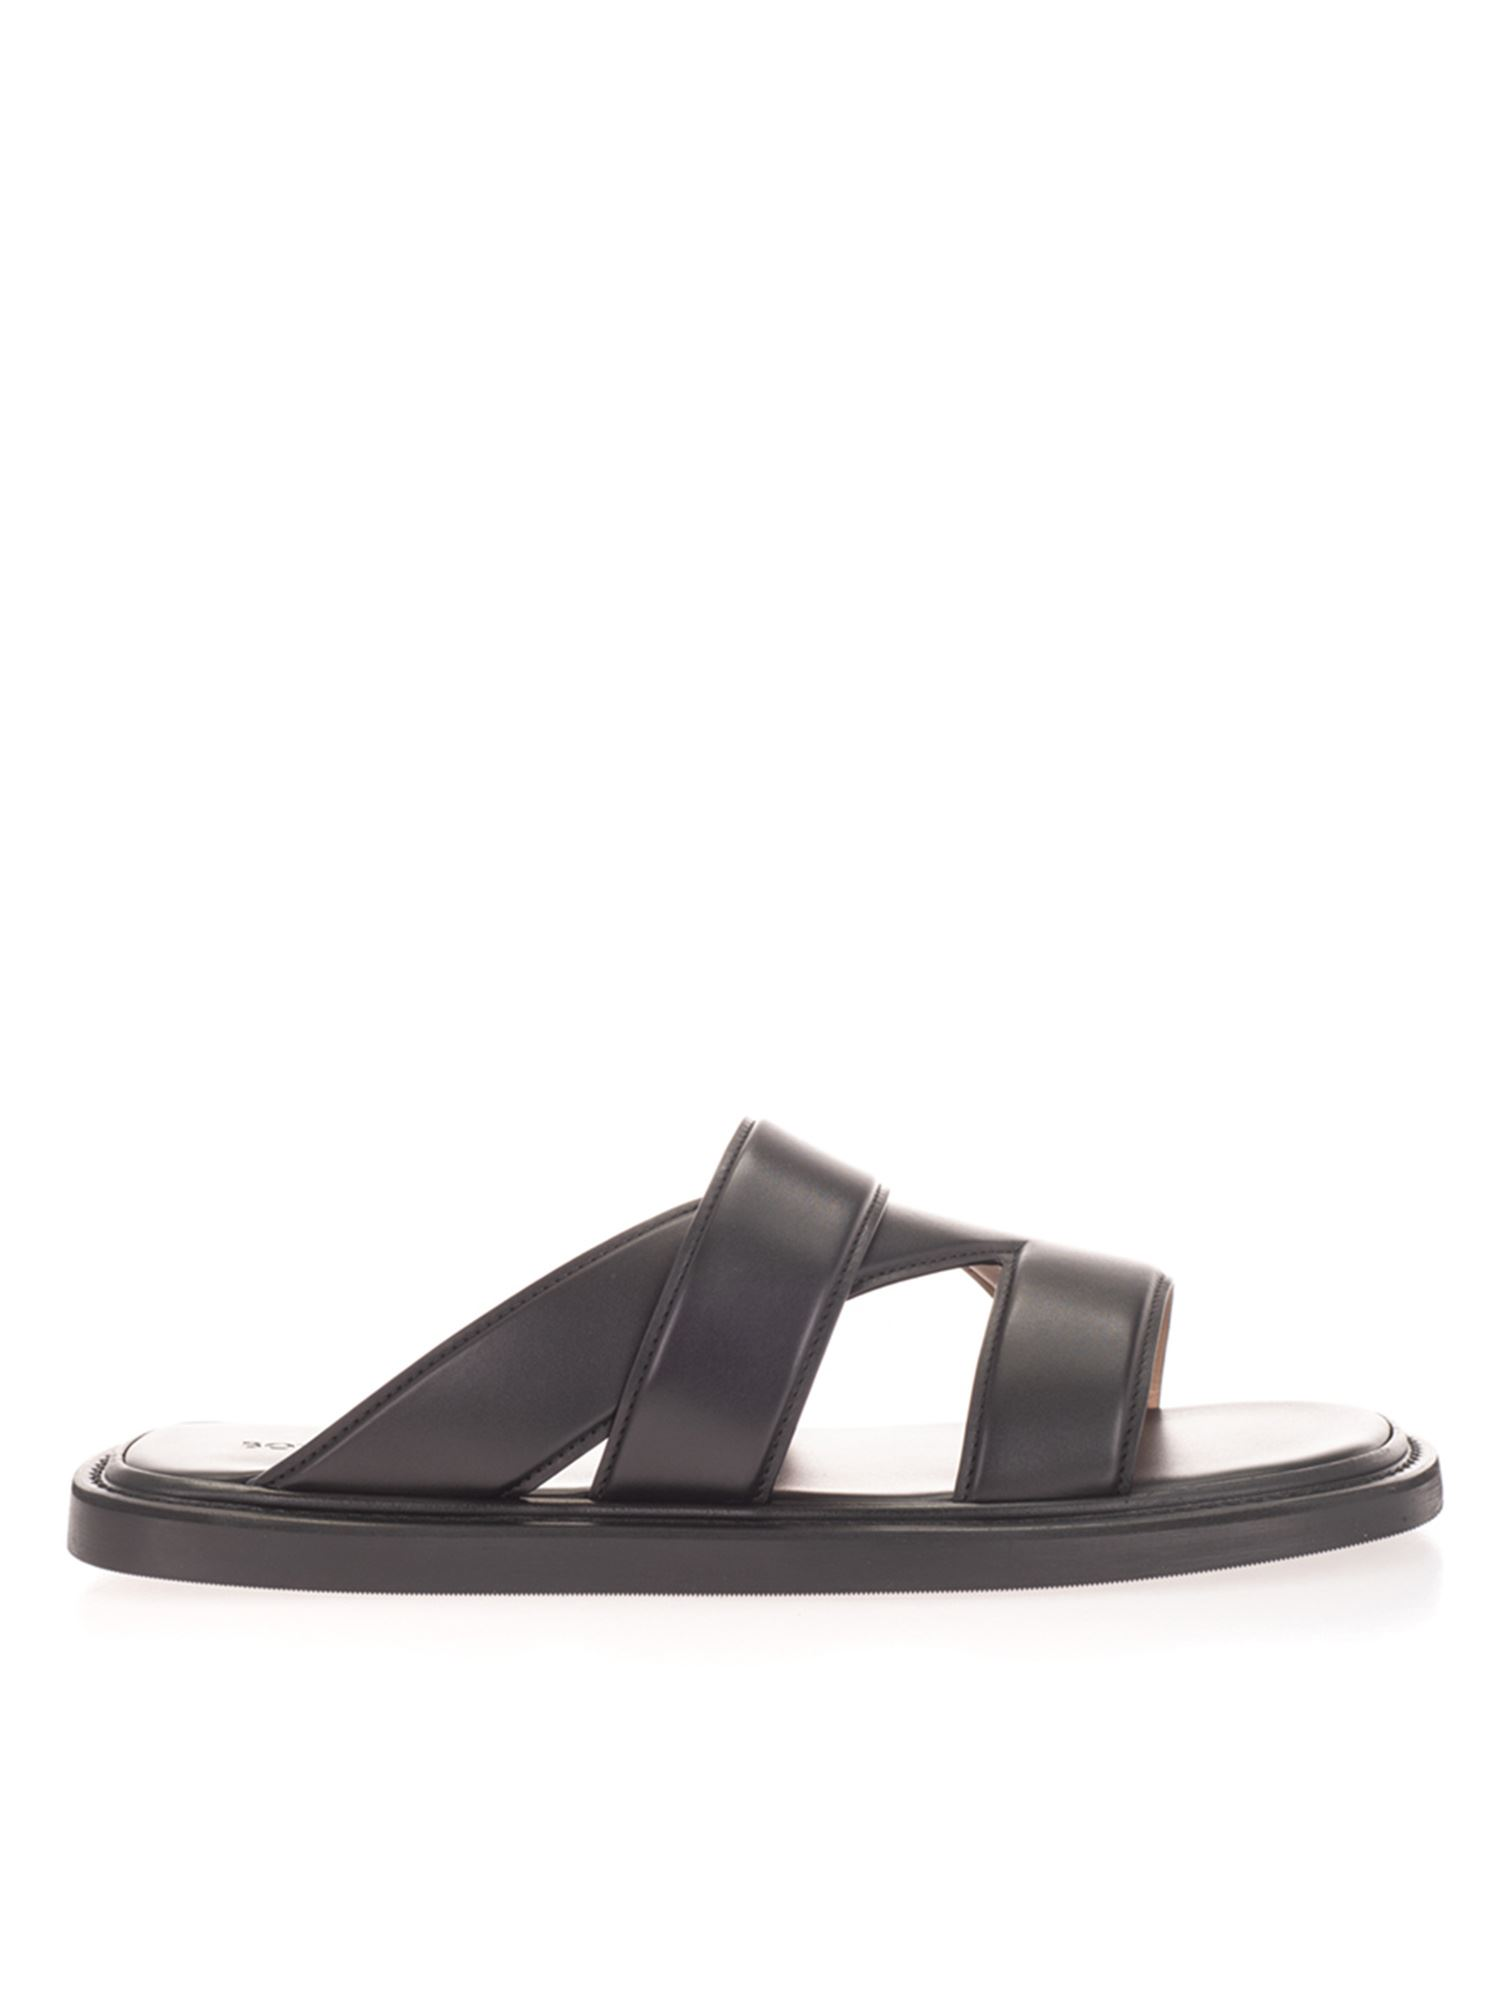 Bottega Veneta WOVEN LEATHER SLIDES IN BLACK